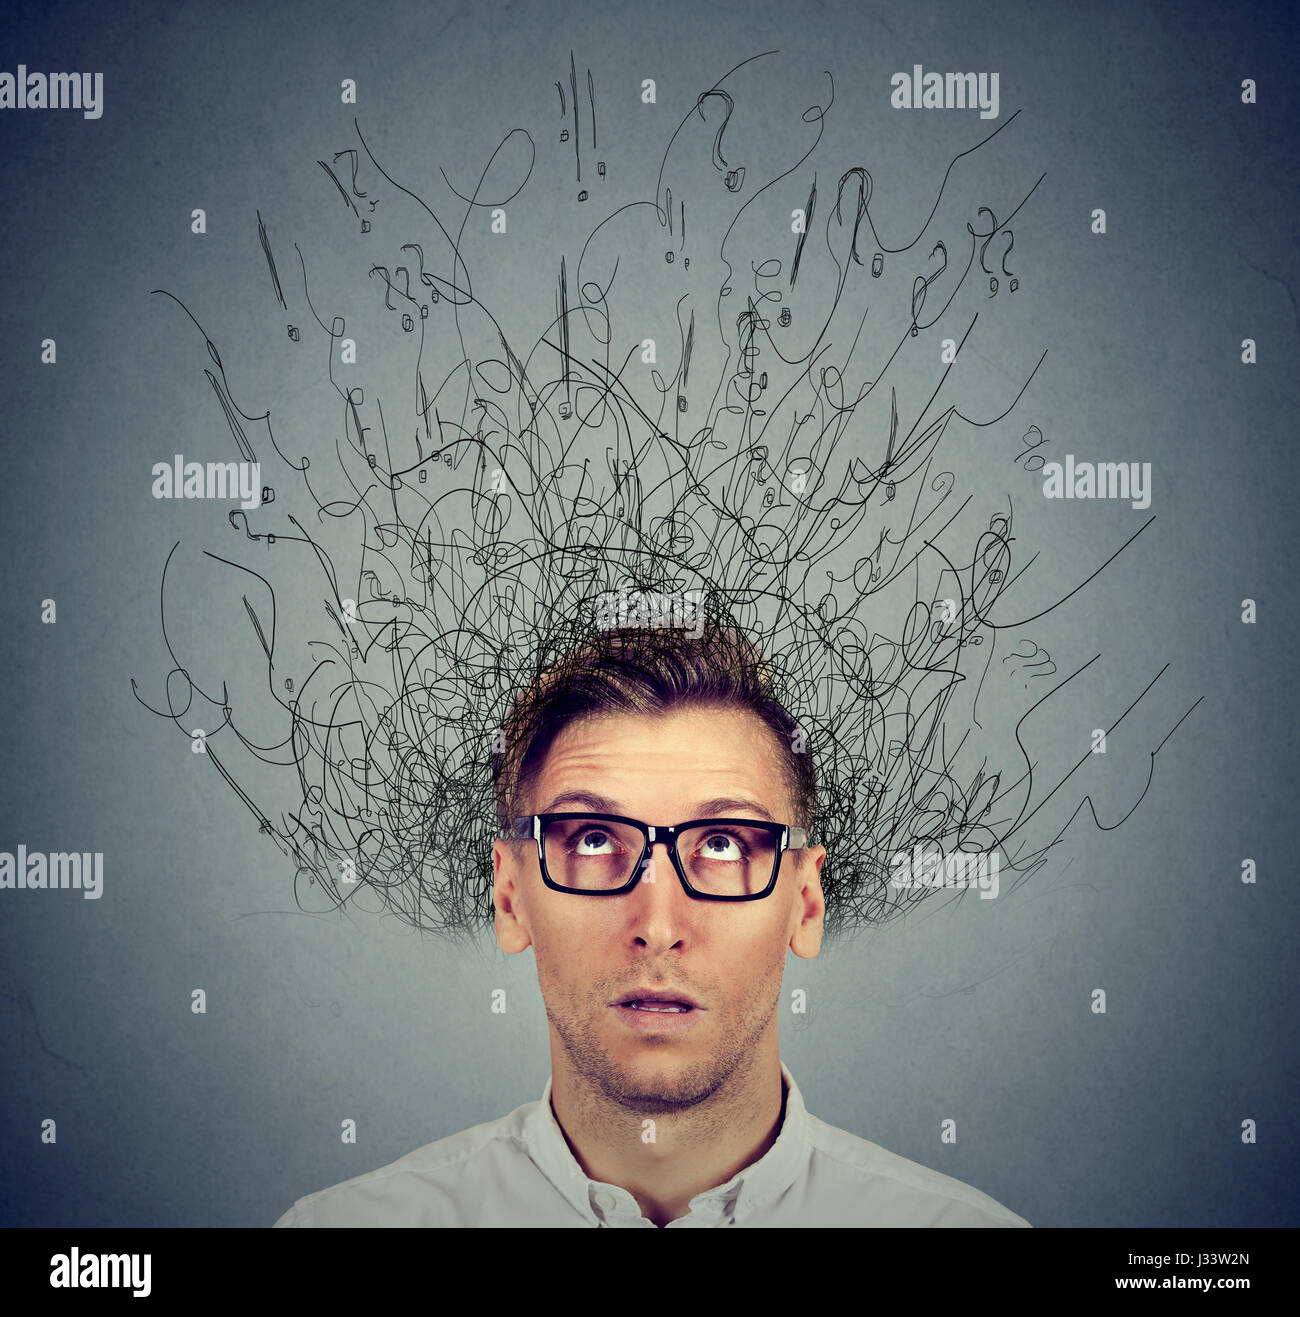 young man with worried stressed face expression and brain melting into lines question marks. Obsessive compulsive, - Stock Image